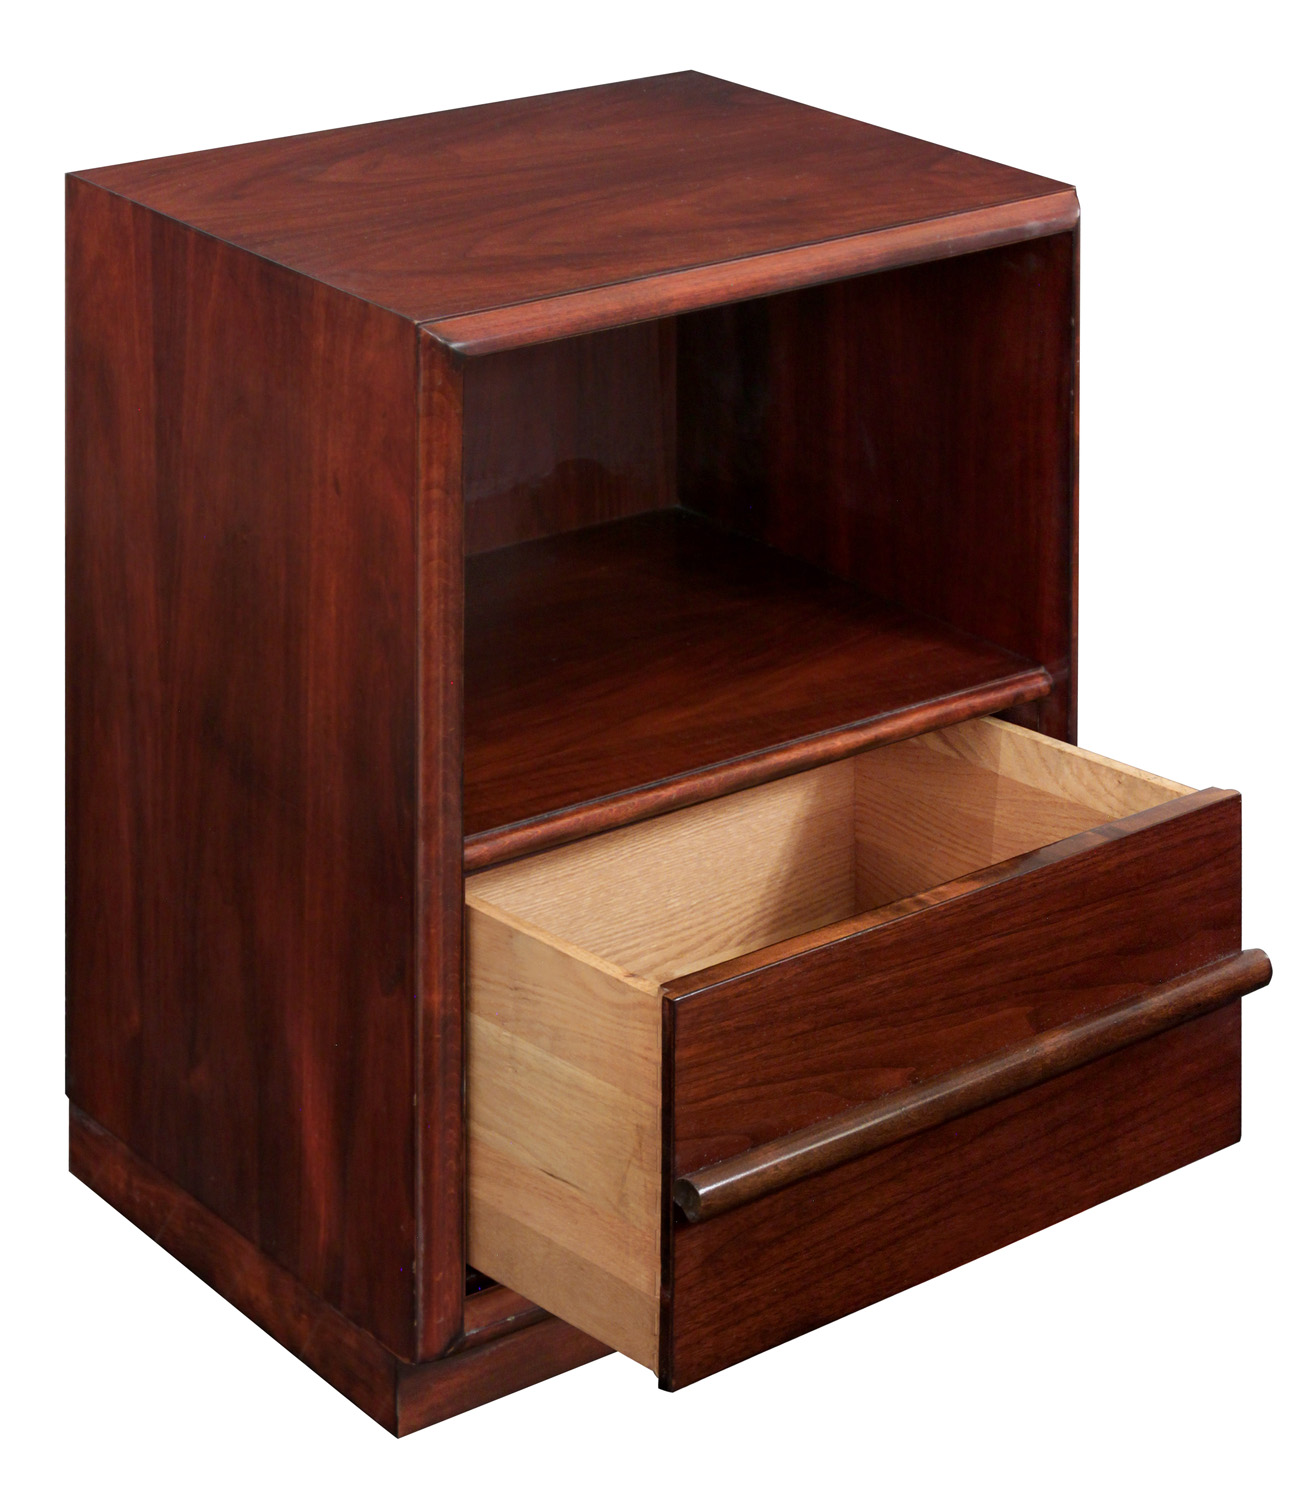 Gibbings 65 wlnt 1 drwer clean nightstands87 detail1 hires.jpg